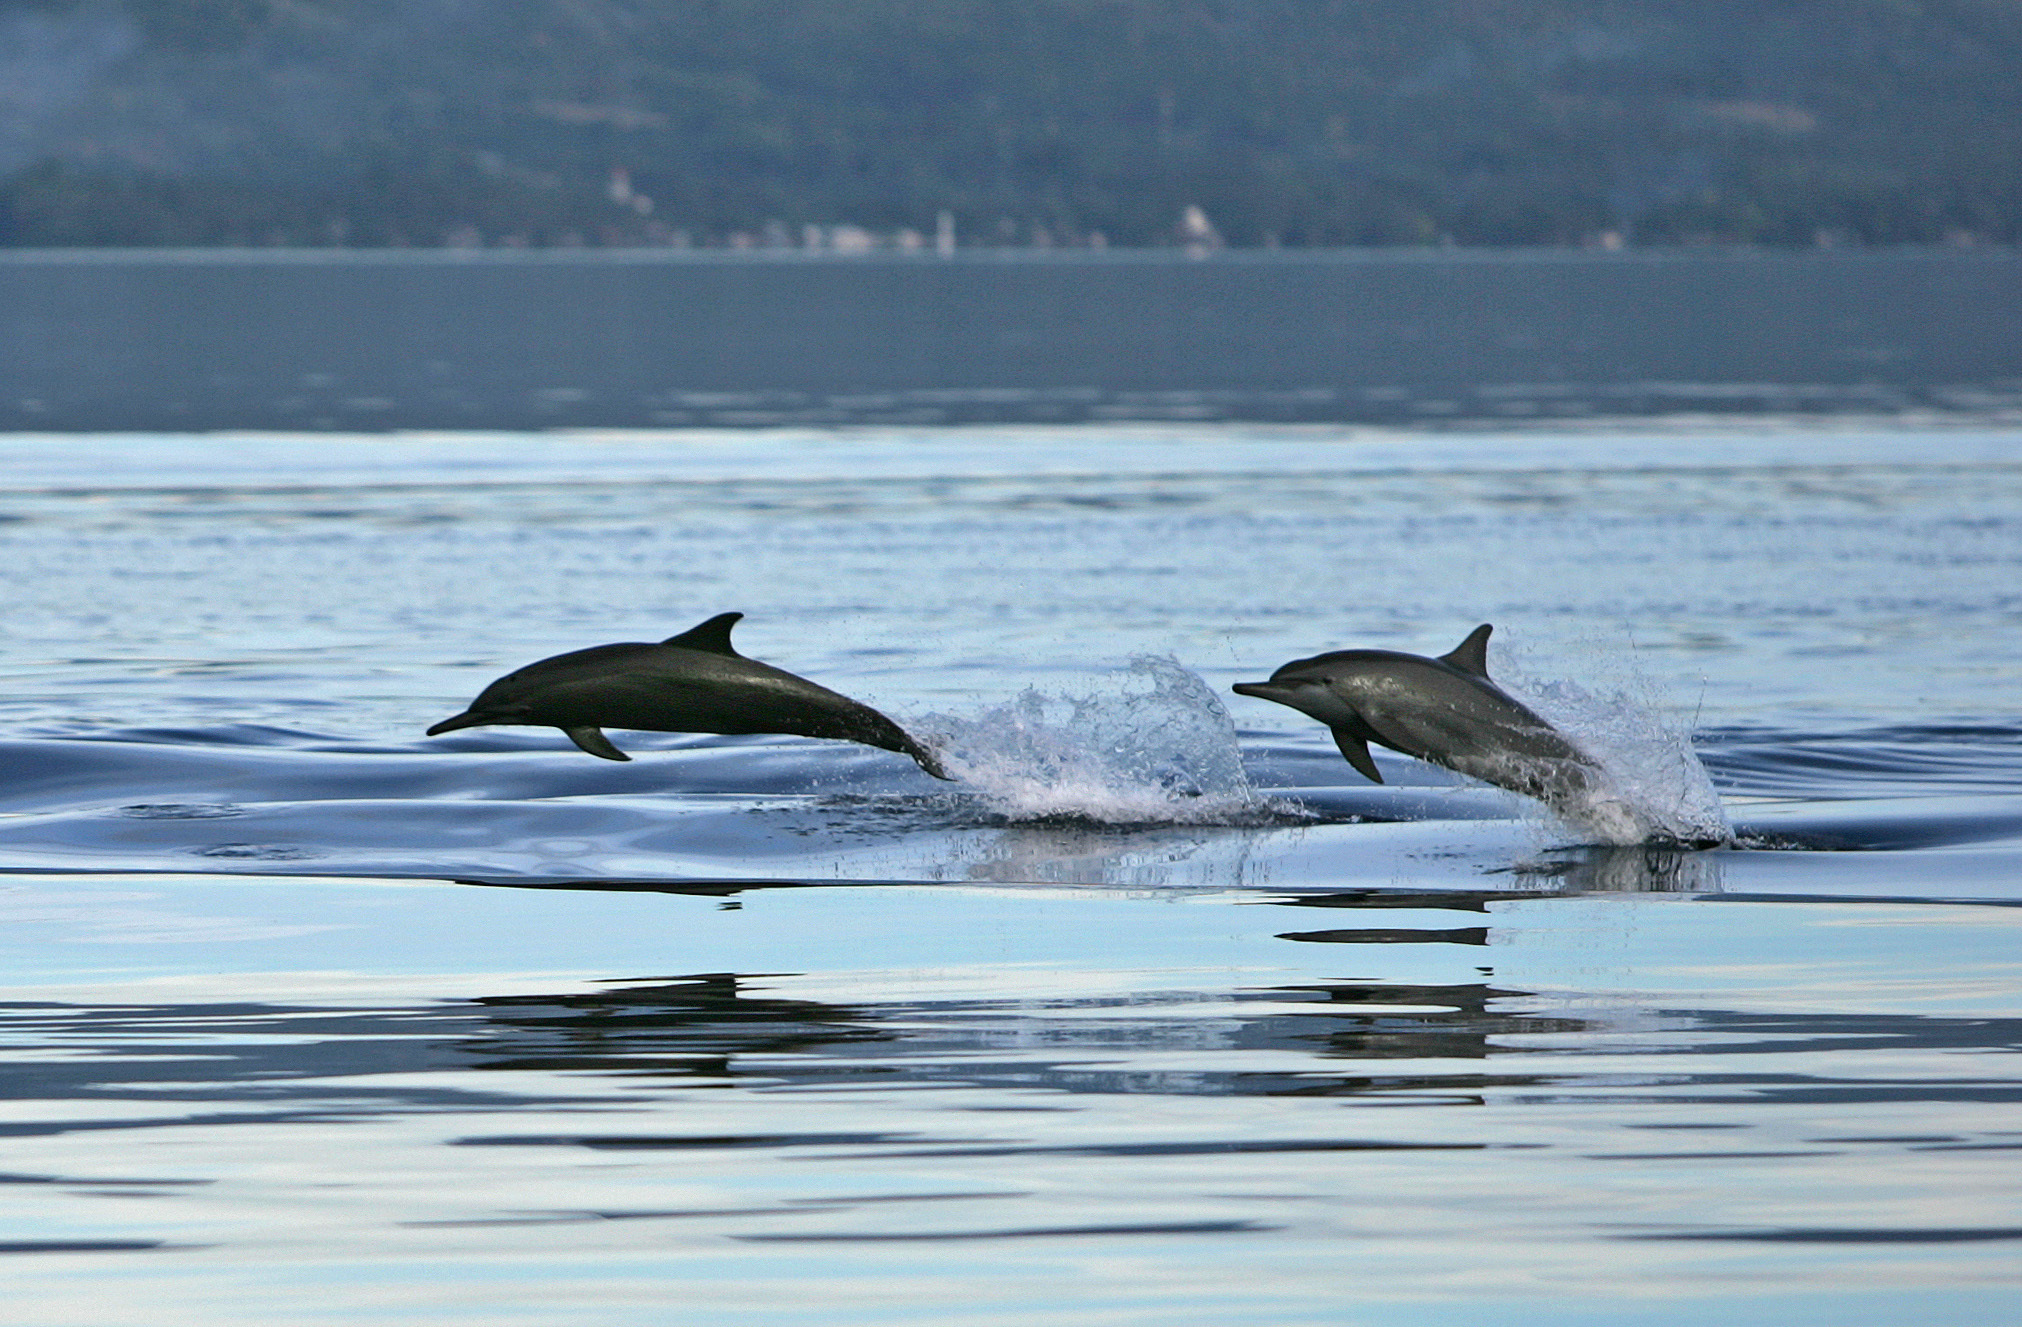 dolphins leaping in waves